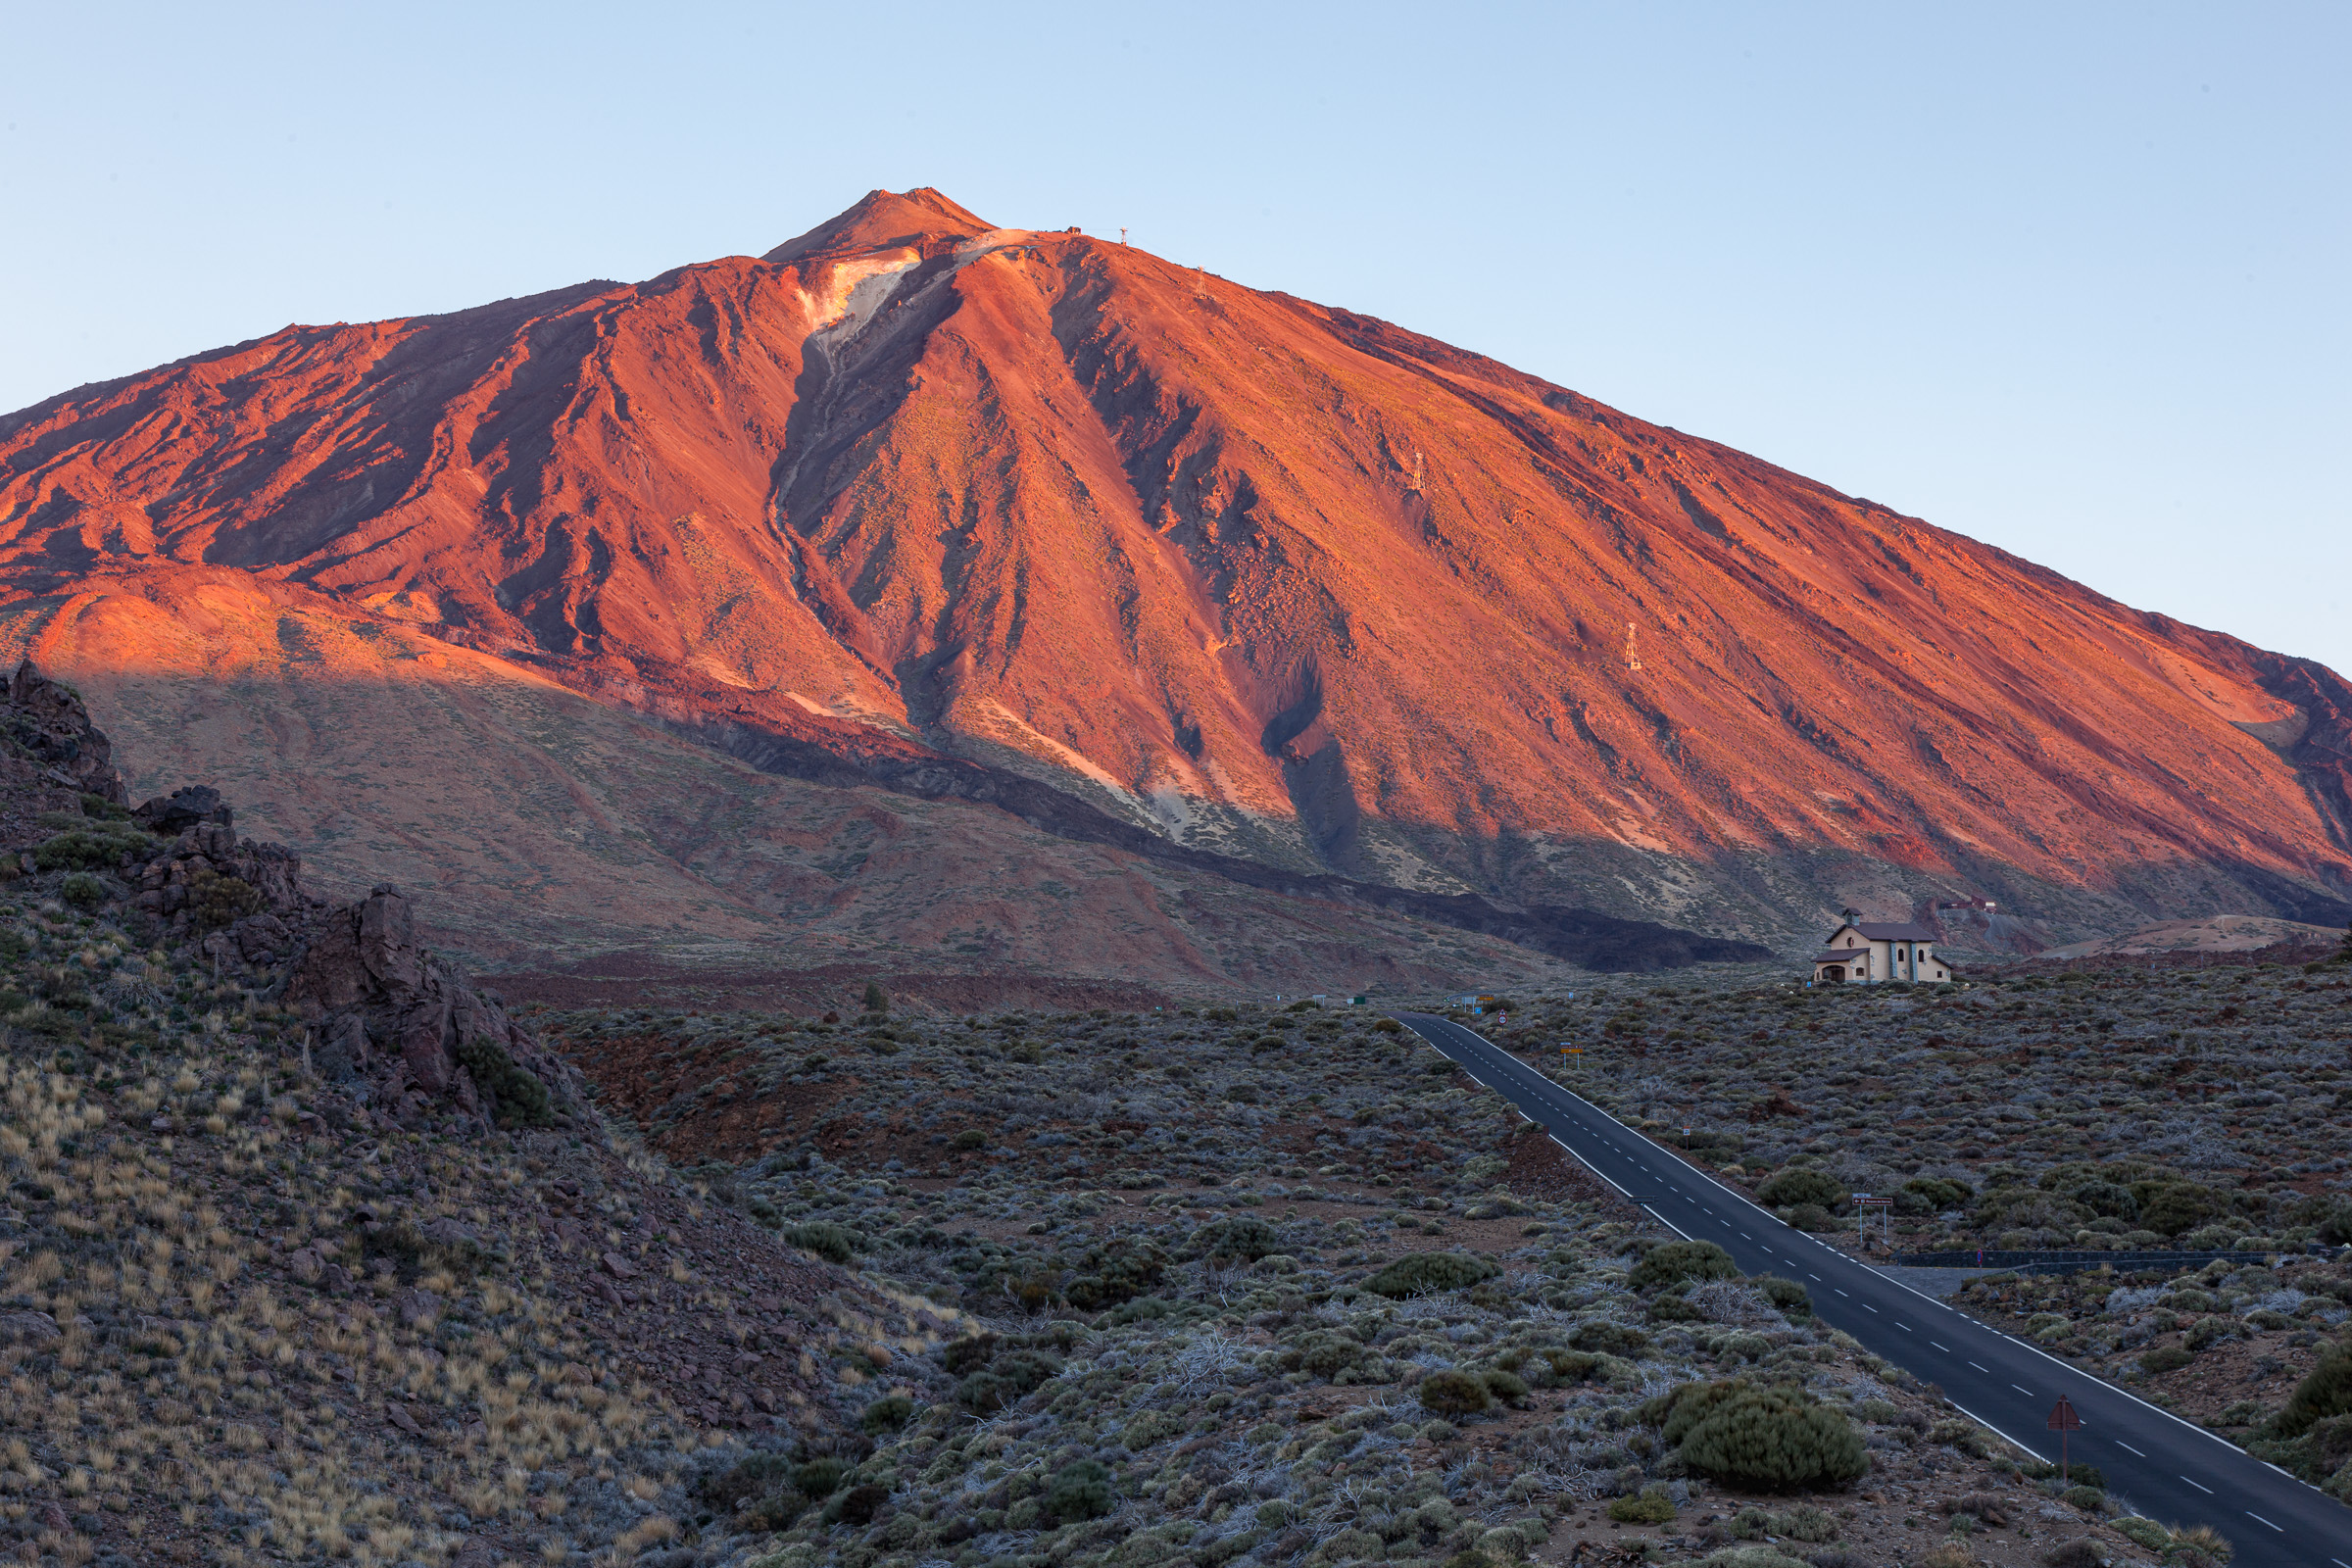 First light on Mount Teide, Tenerife